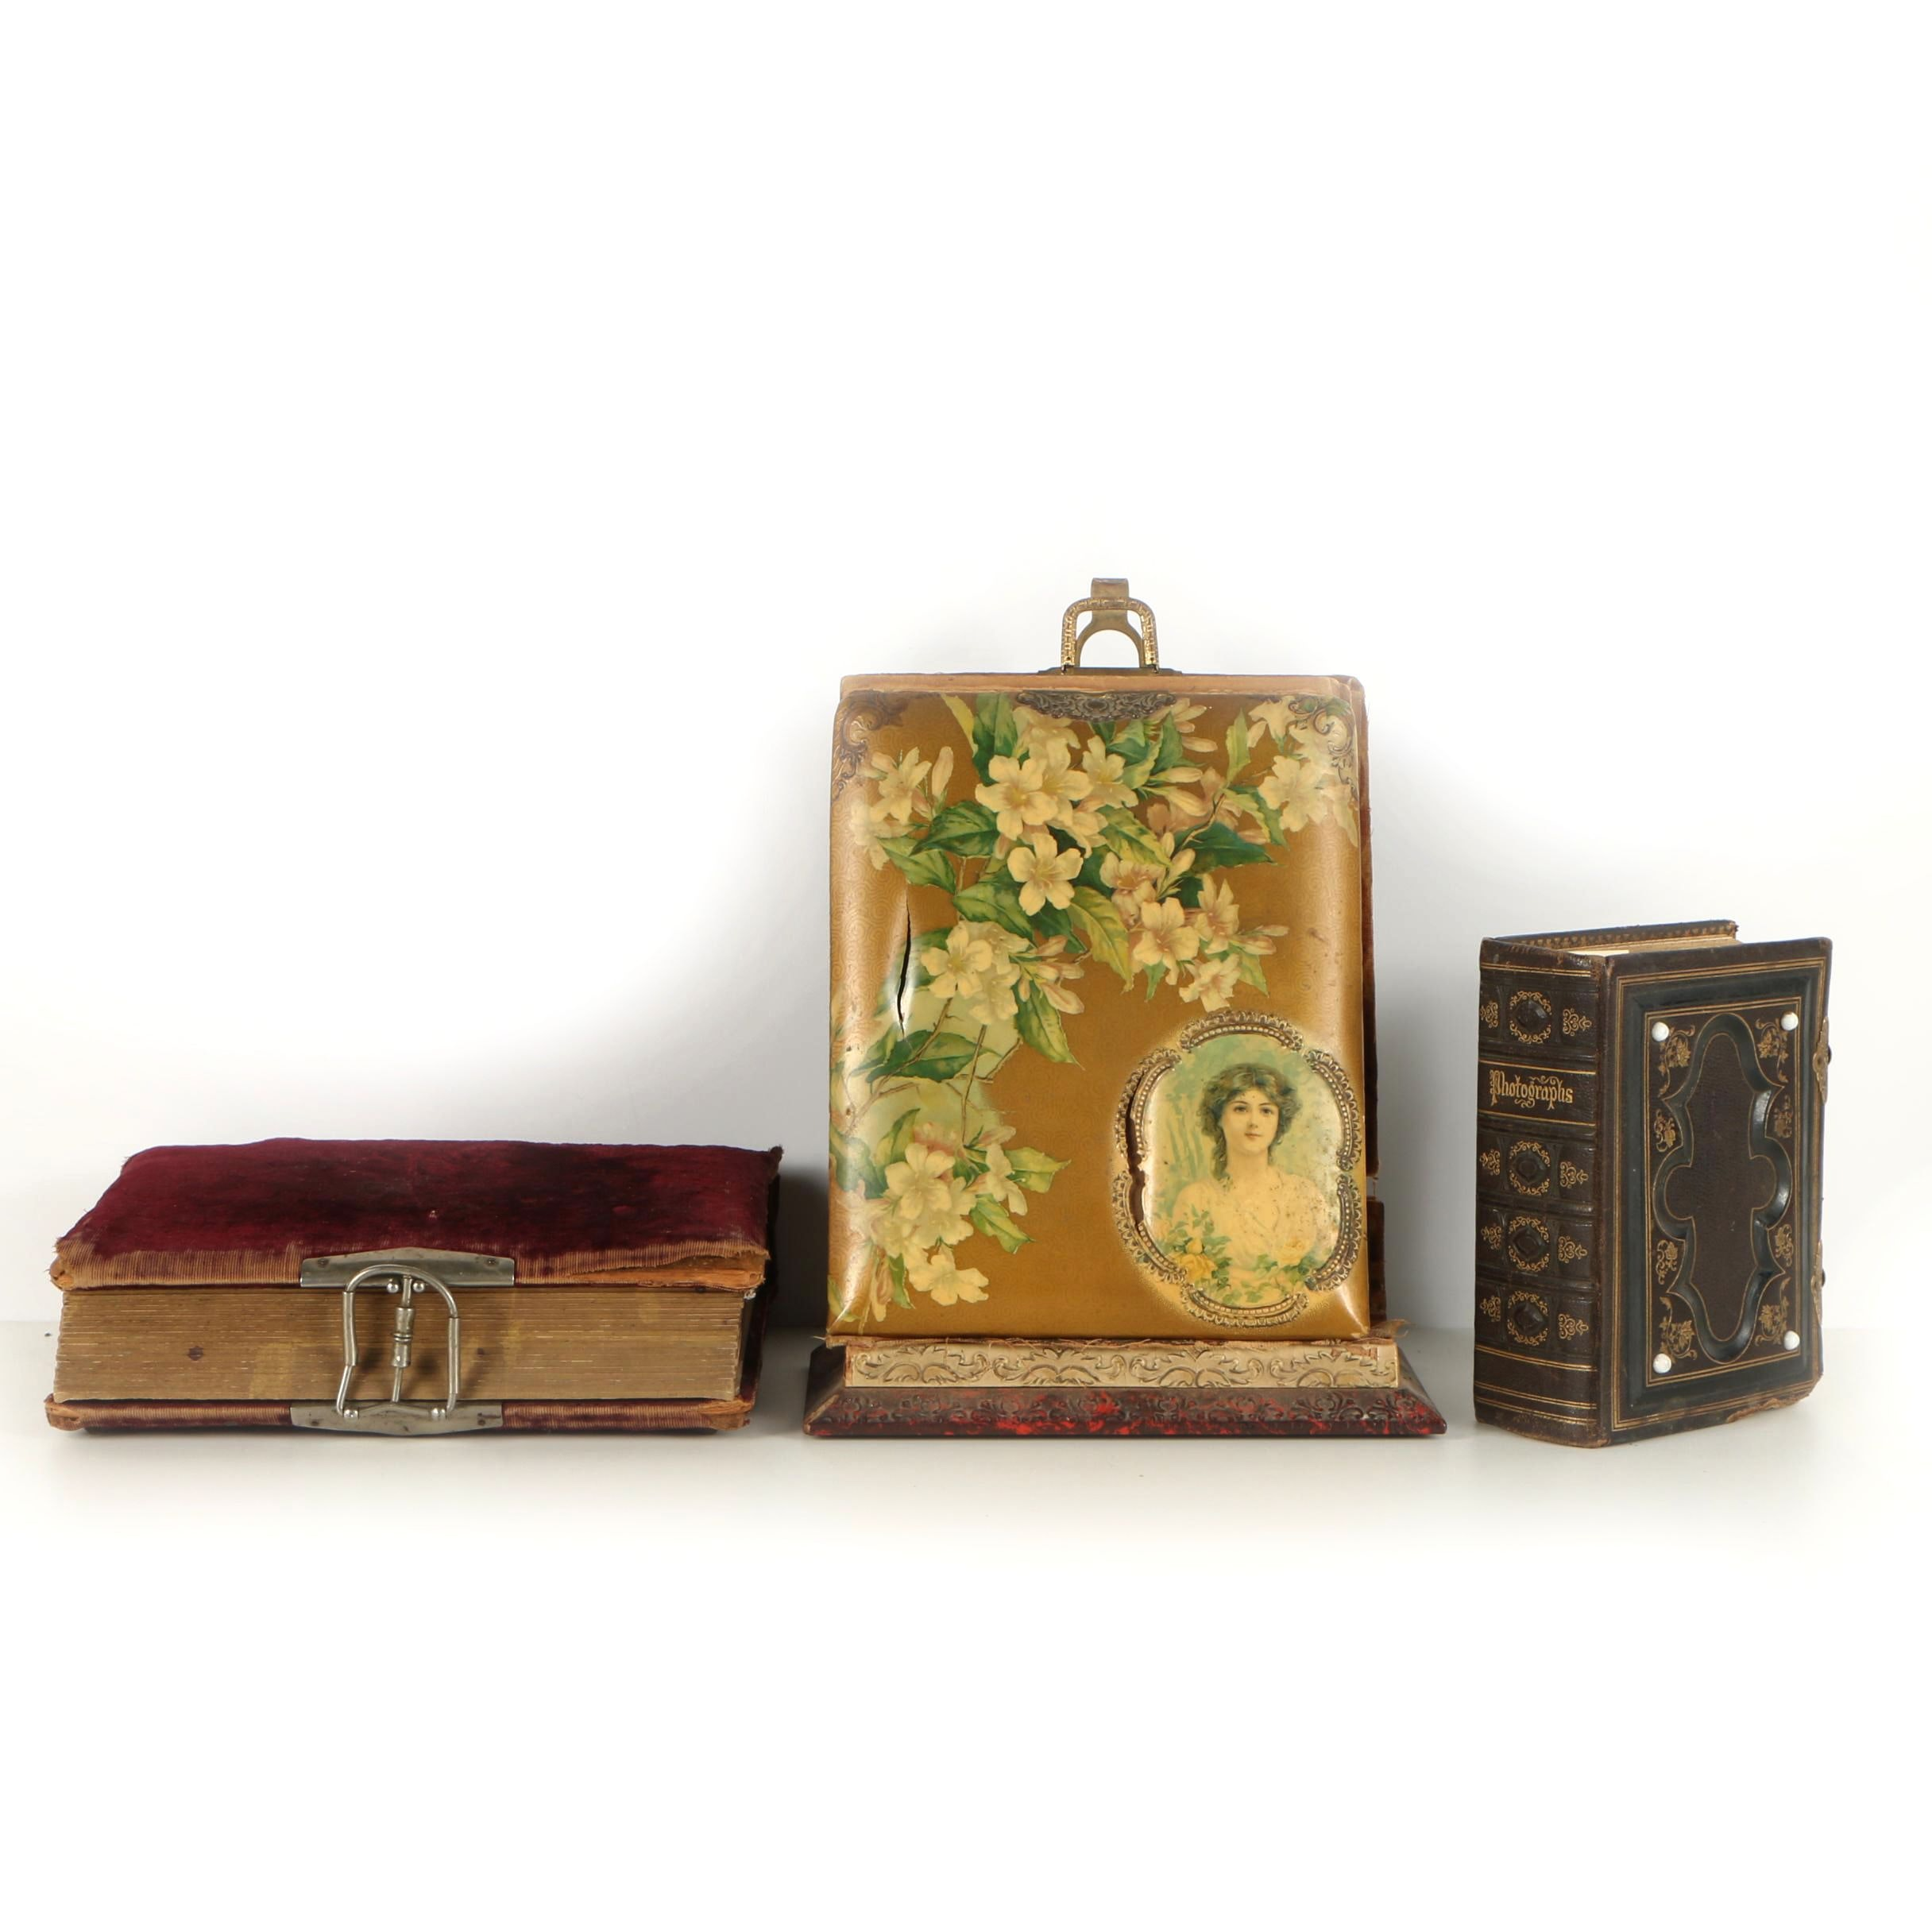 Antique Photo Albums with Tintypes, Cabinet Cards and Cartes de Visite